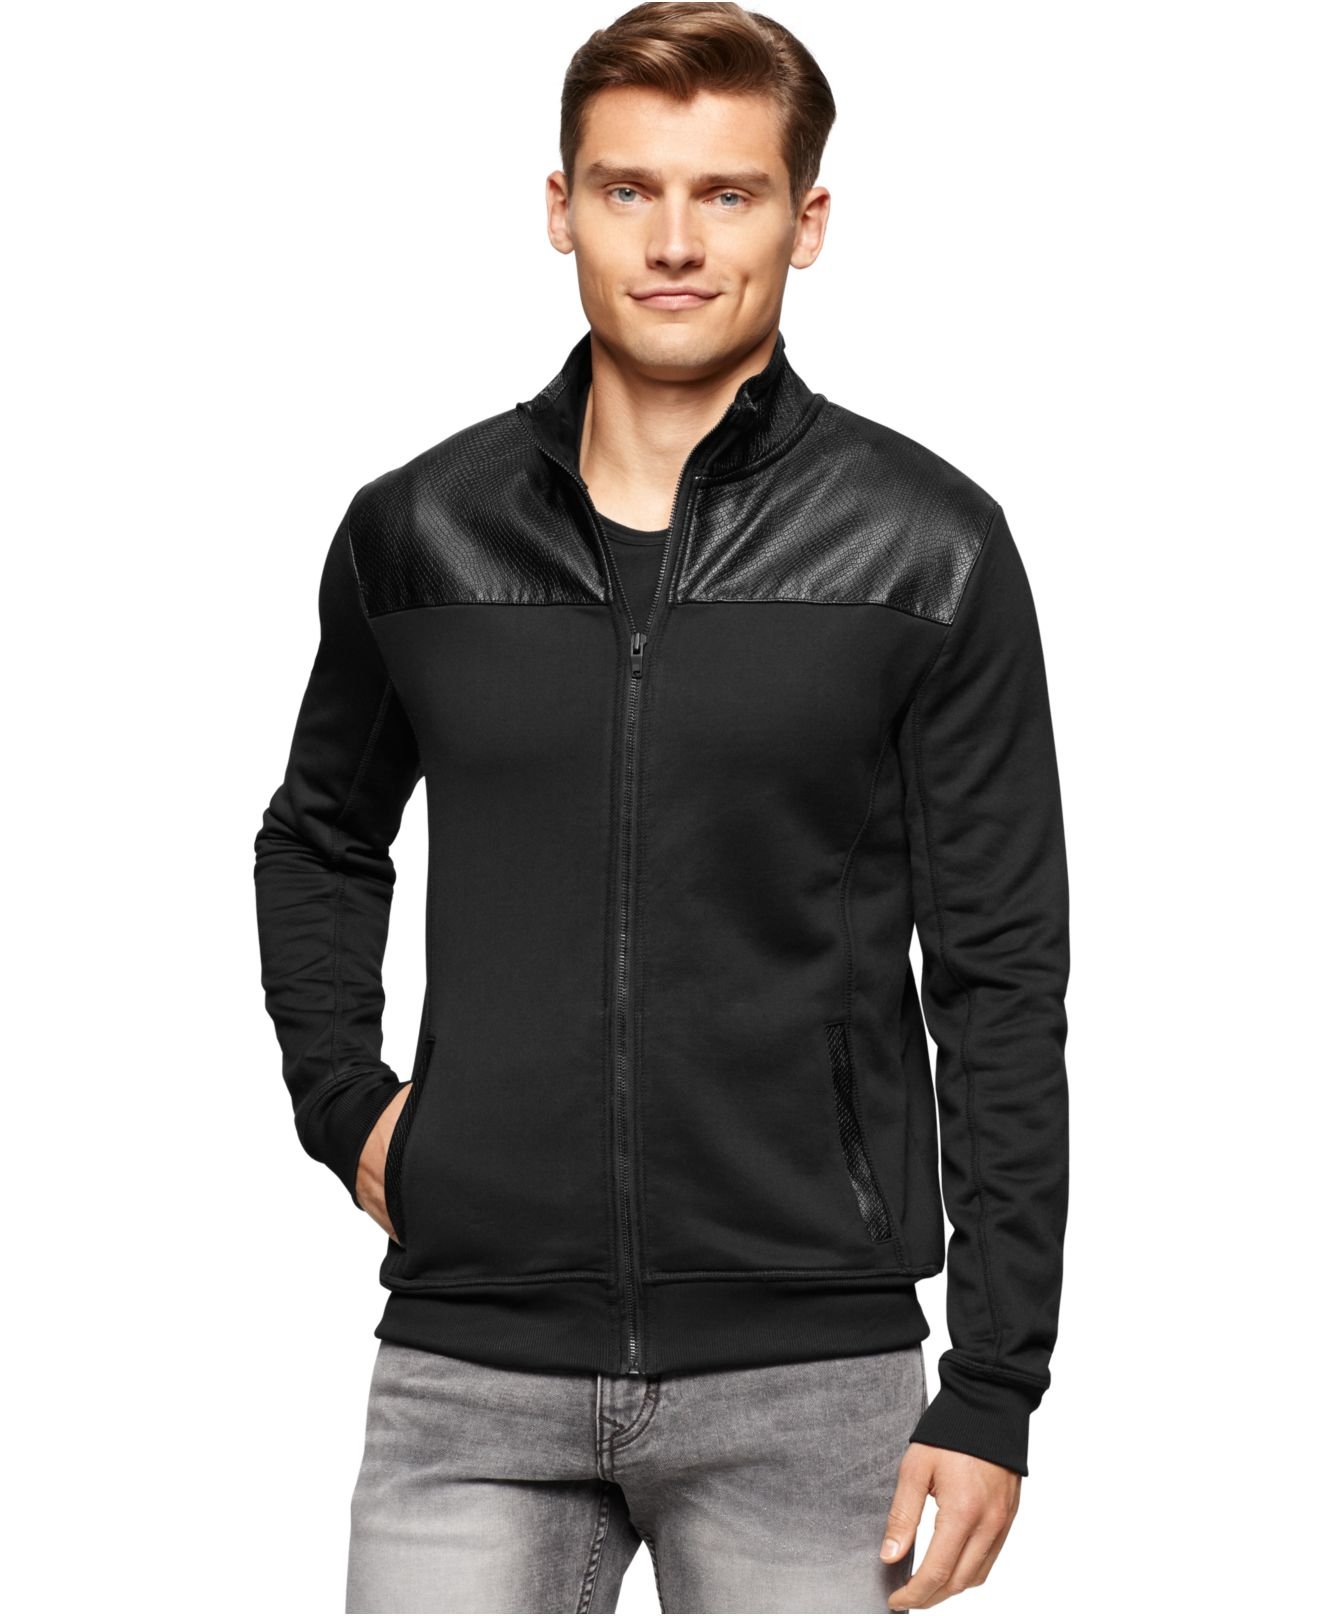 Shopping Online Free Shipping zipped neck sweatshirt - Black Calvin Klein Jeans Outlet Cheap Prices Get Authentic Online Online Sale 4qdrFqE